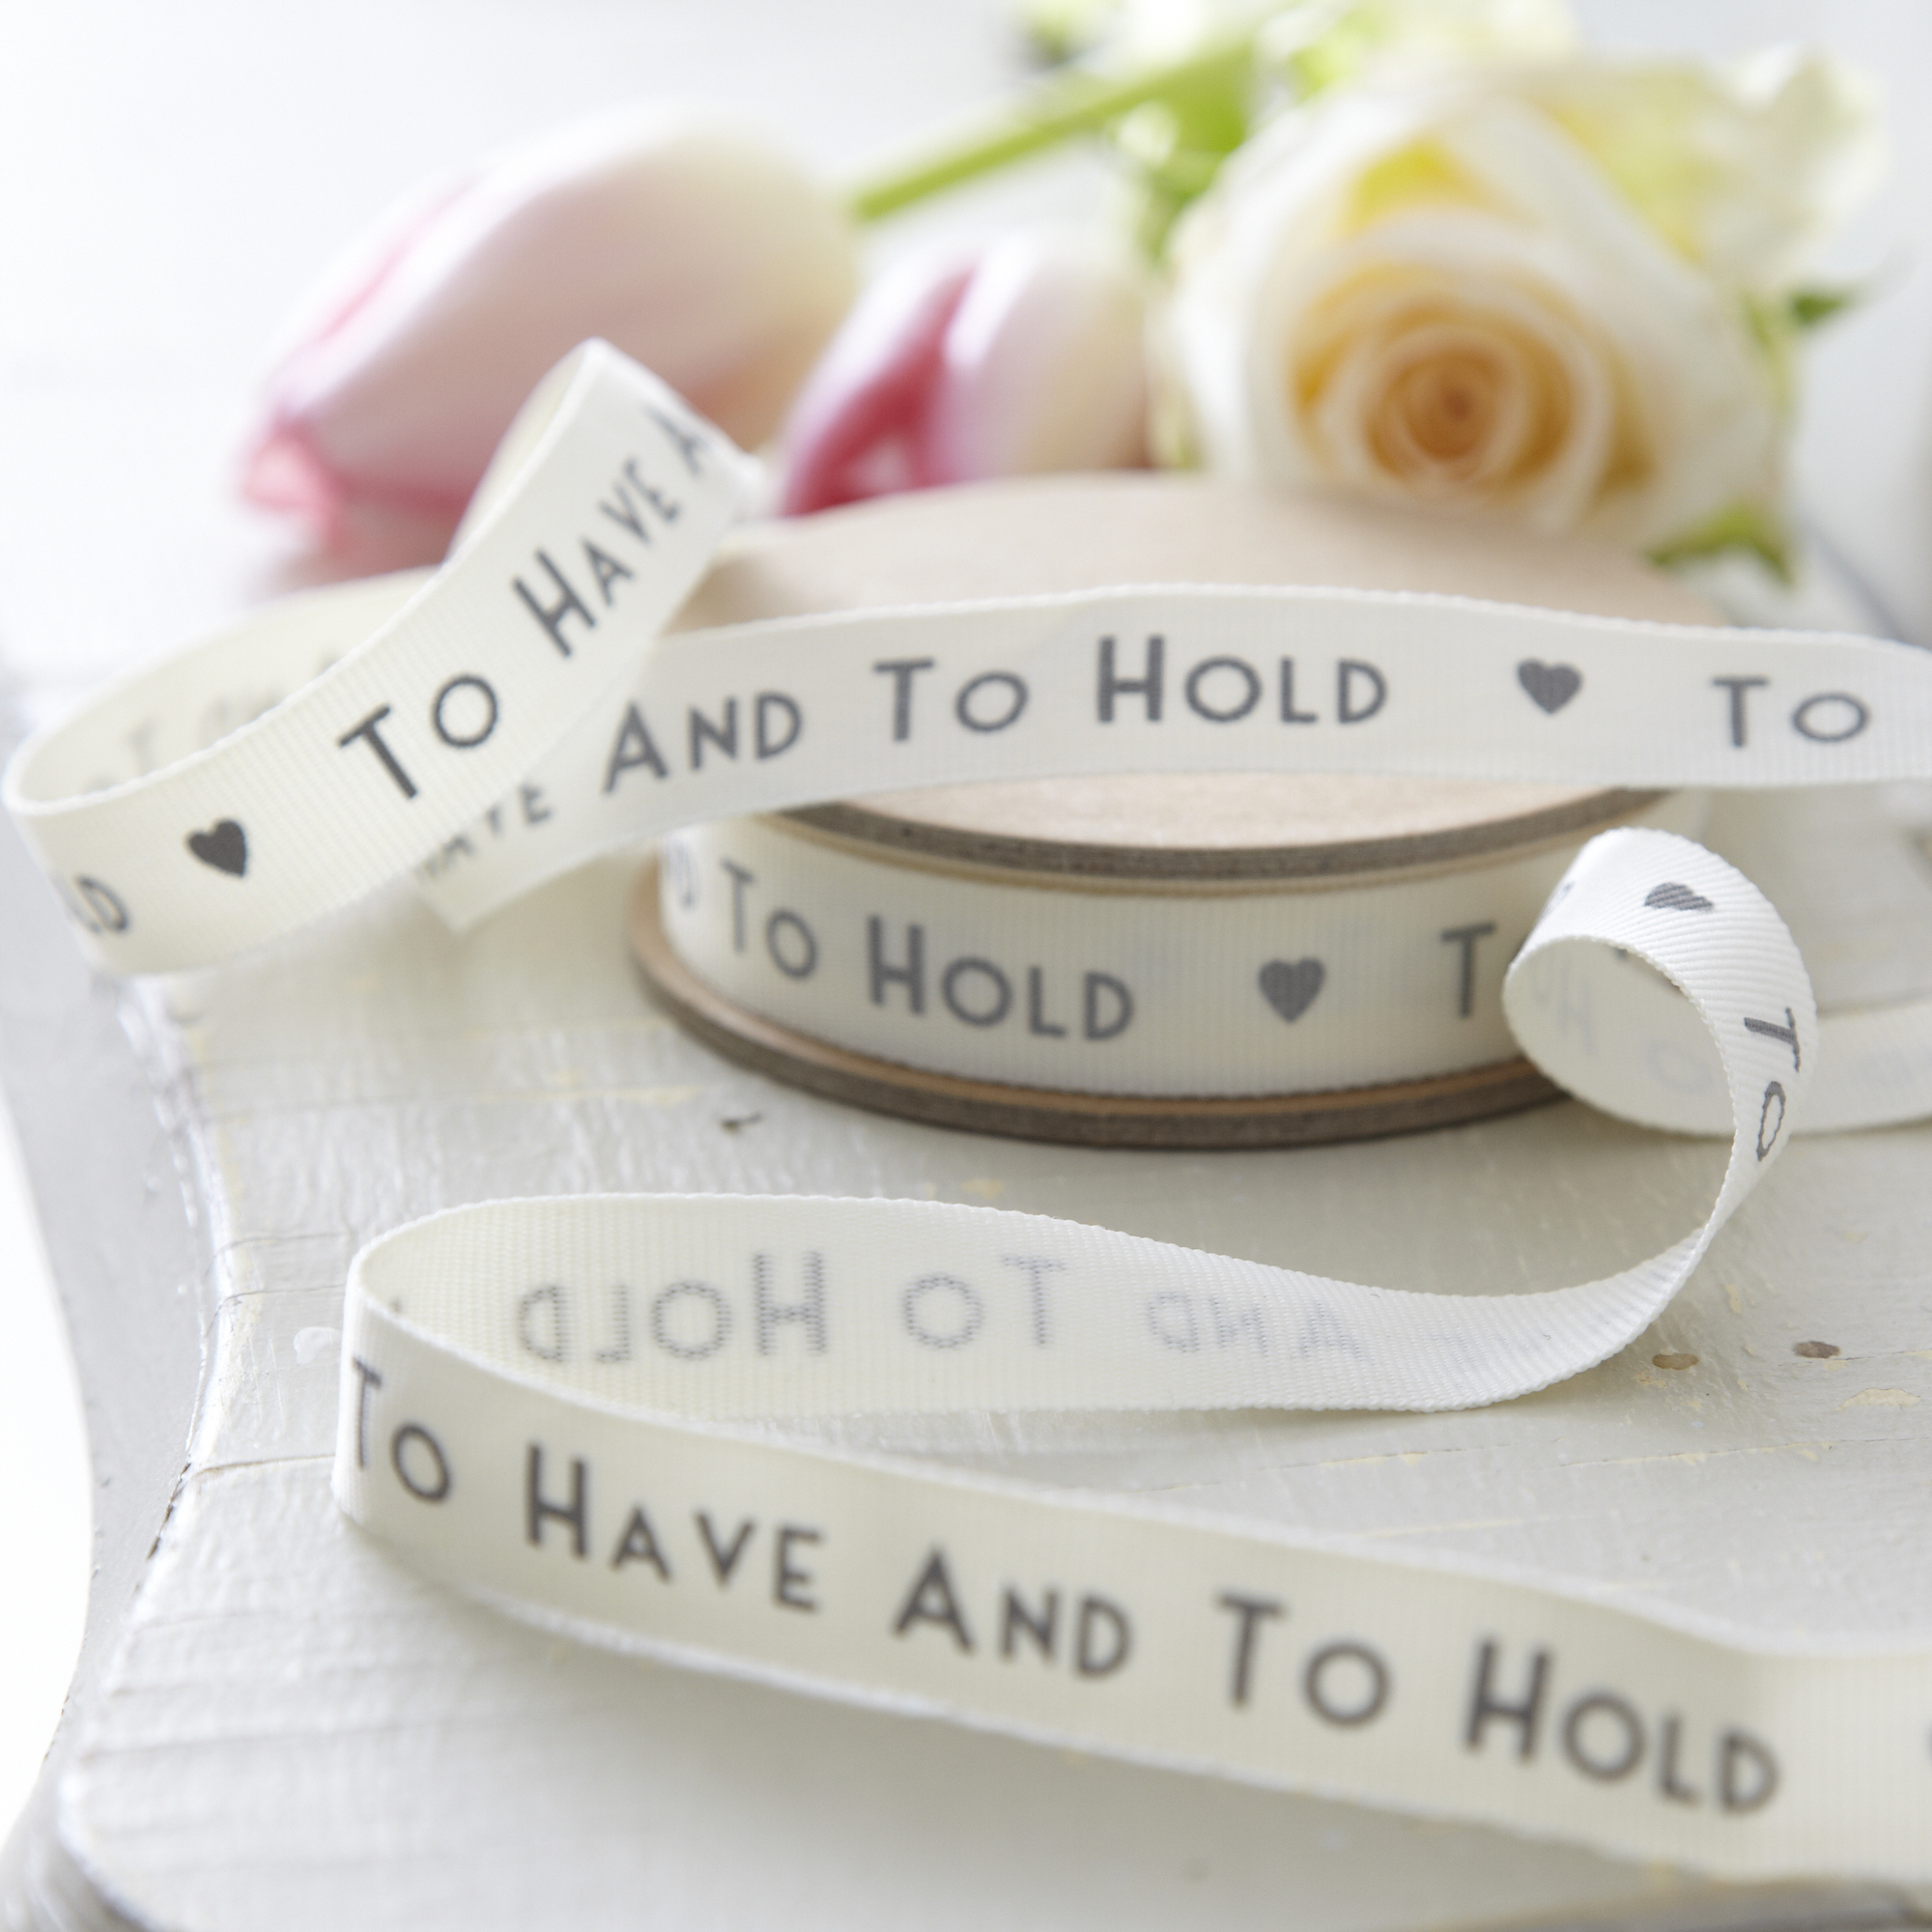 Awesome Wedding Gifts: 15 Awesome Wedding Gift Ideas